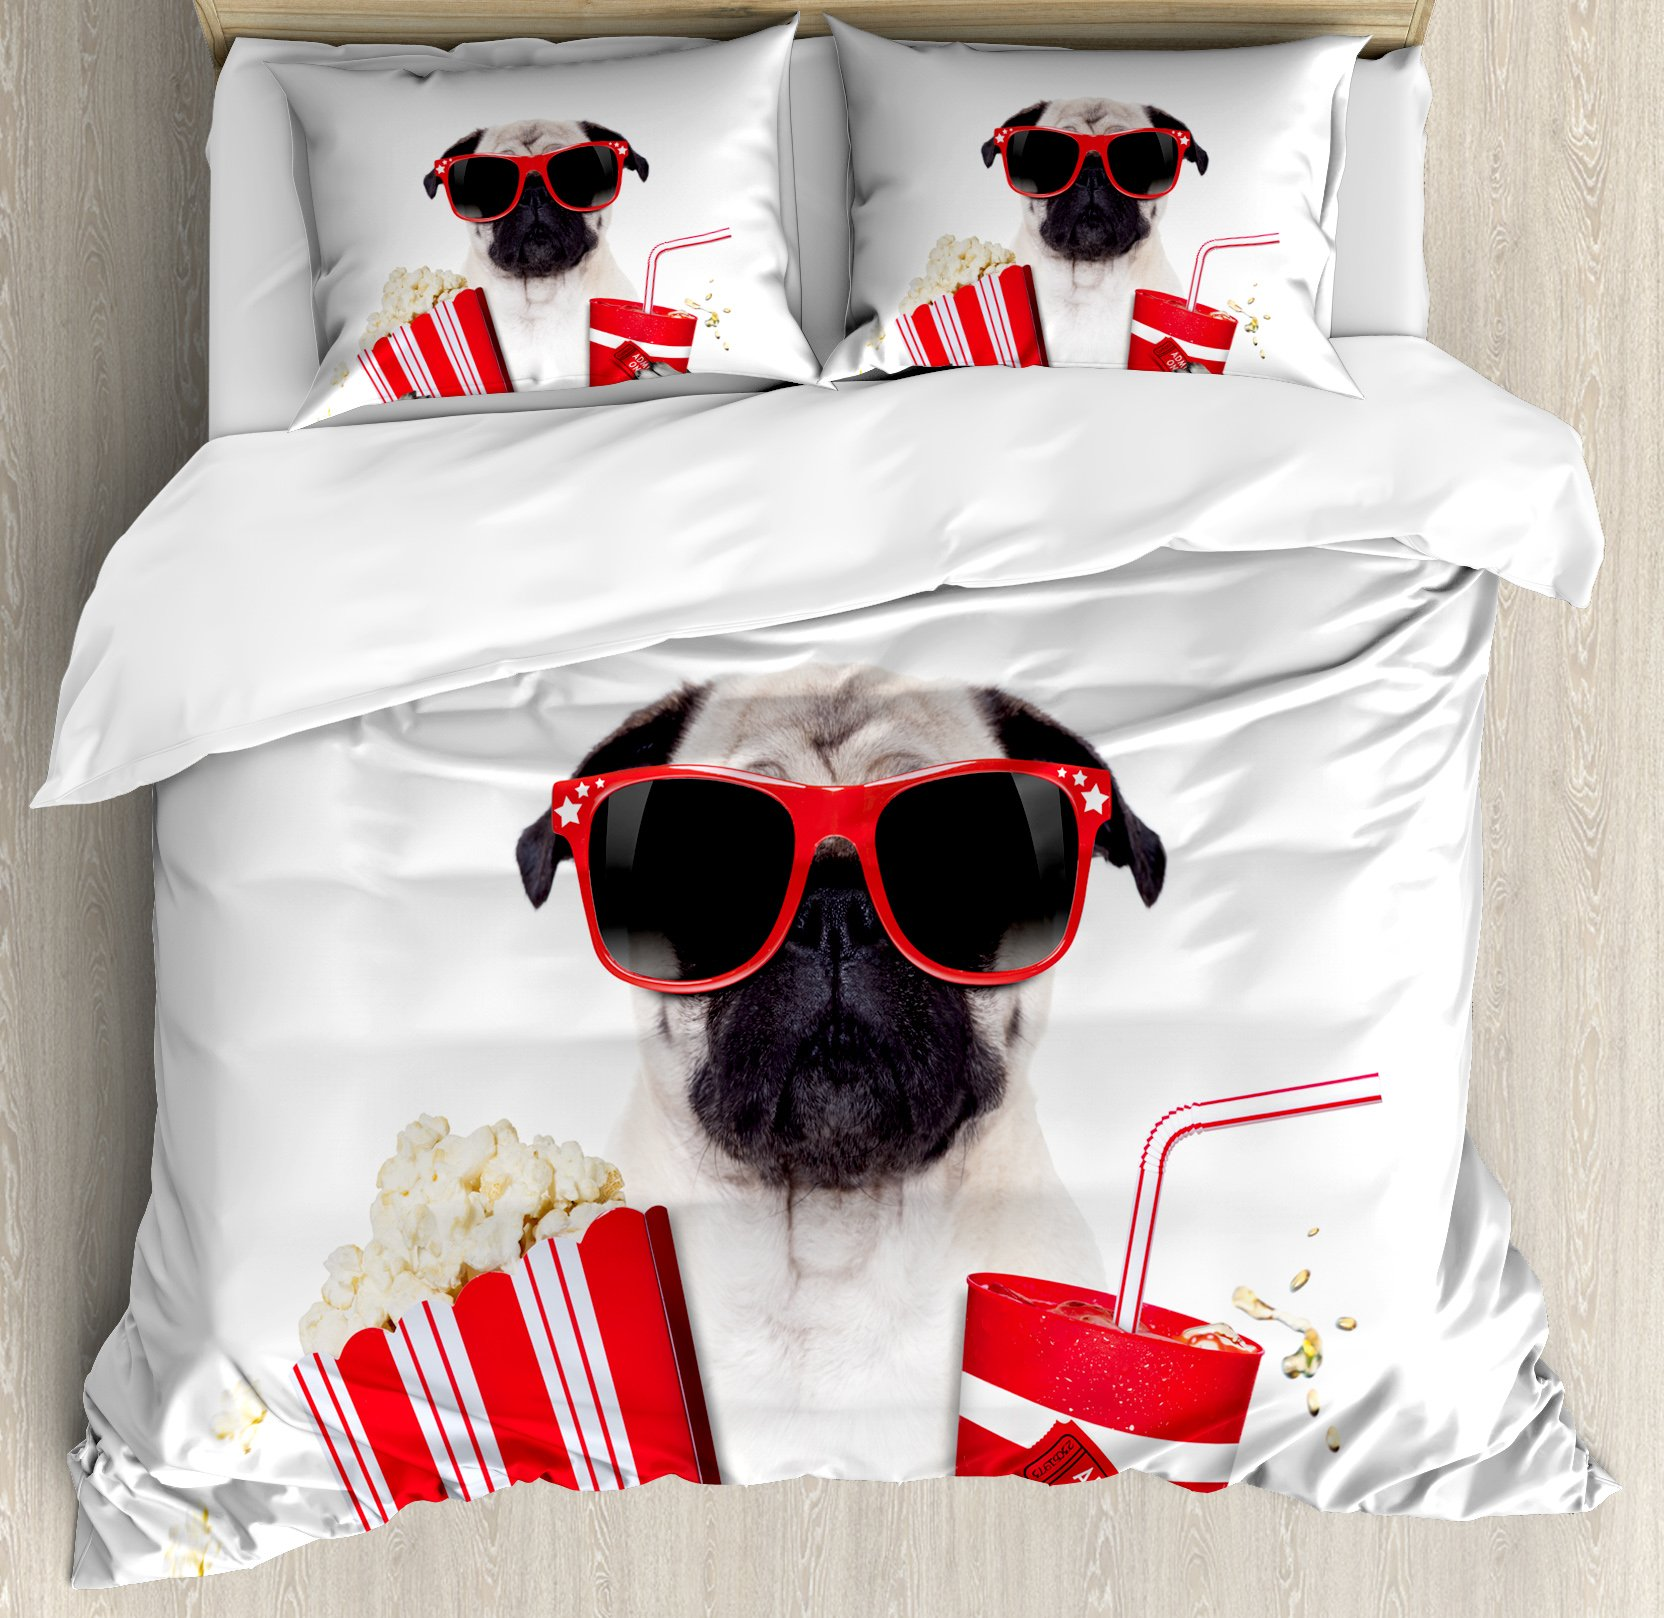 Pug King Size Duvet Cover Set by Ambesonne, Going to the Movies Pug Dog Popcorn Soft Drink Movie Star Glasses Animal Fun Image, Decorative 3 Piece Bedding Set with 2 Pillow Shams, Cream Red Black